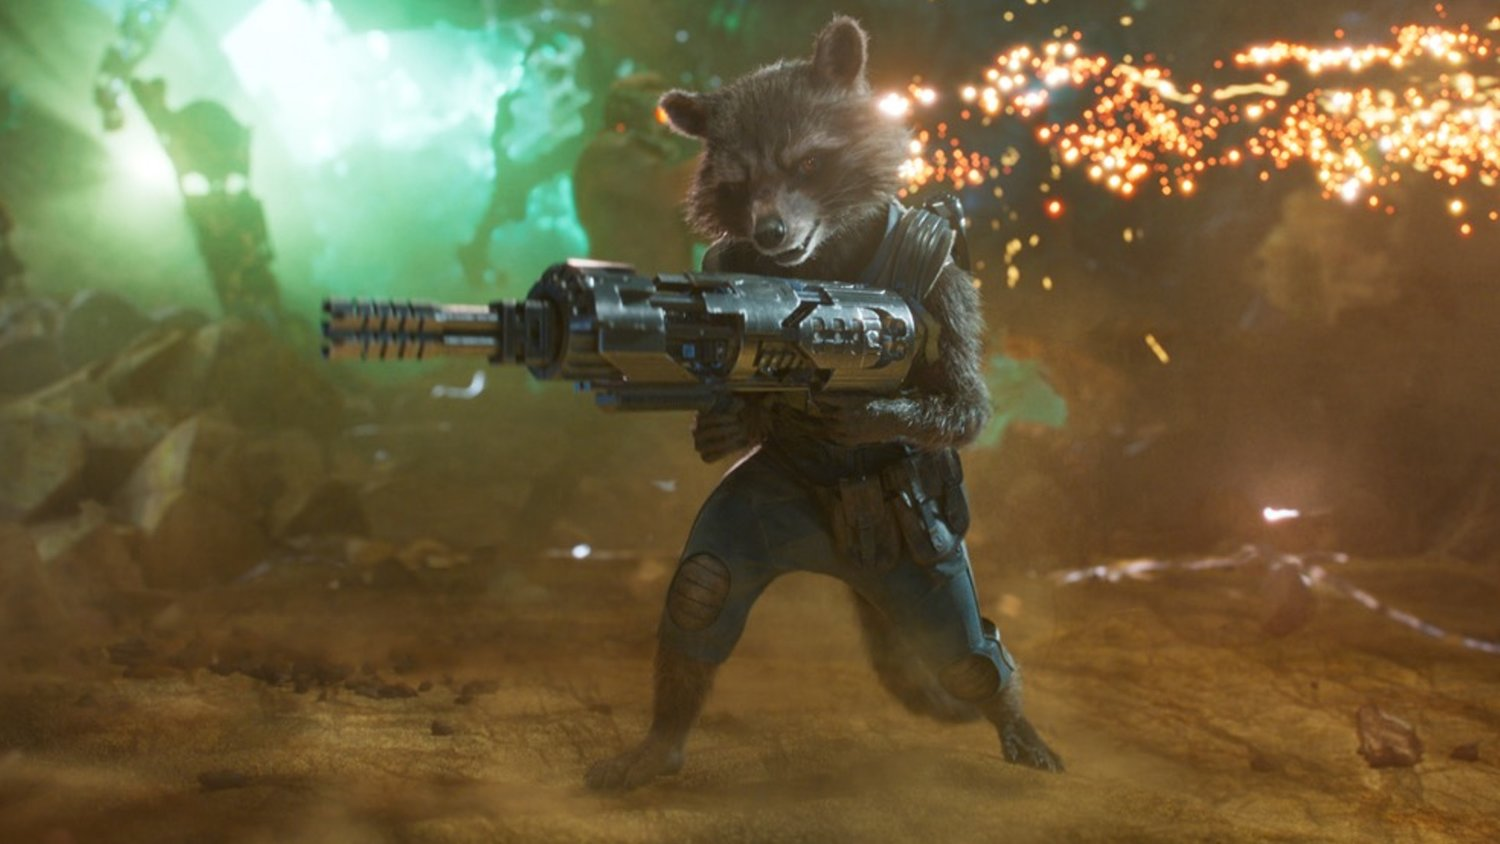 Fun New Poster and Photos From GUARDIANS OF THE GALAXY VOL. 2